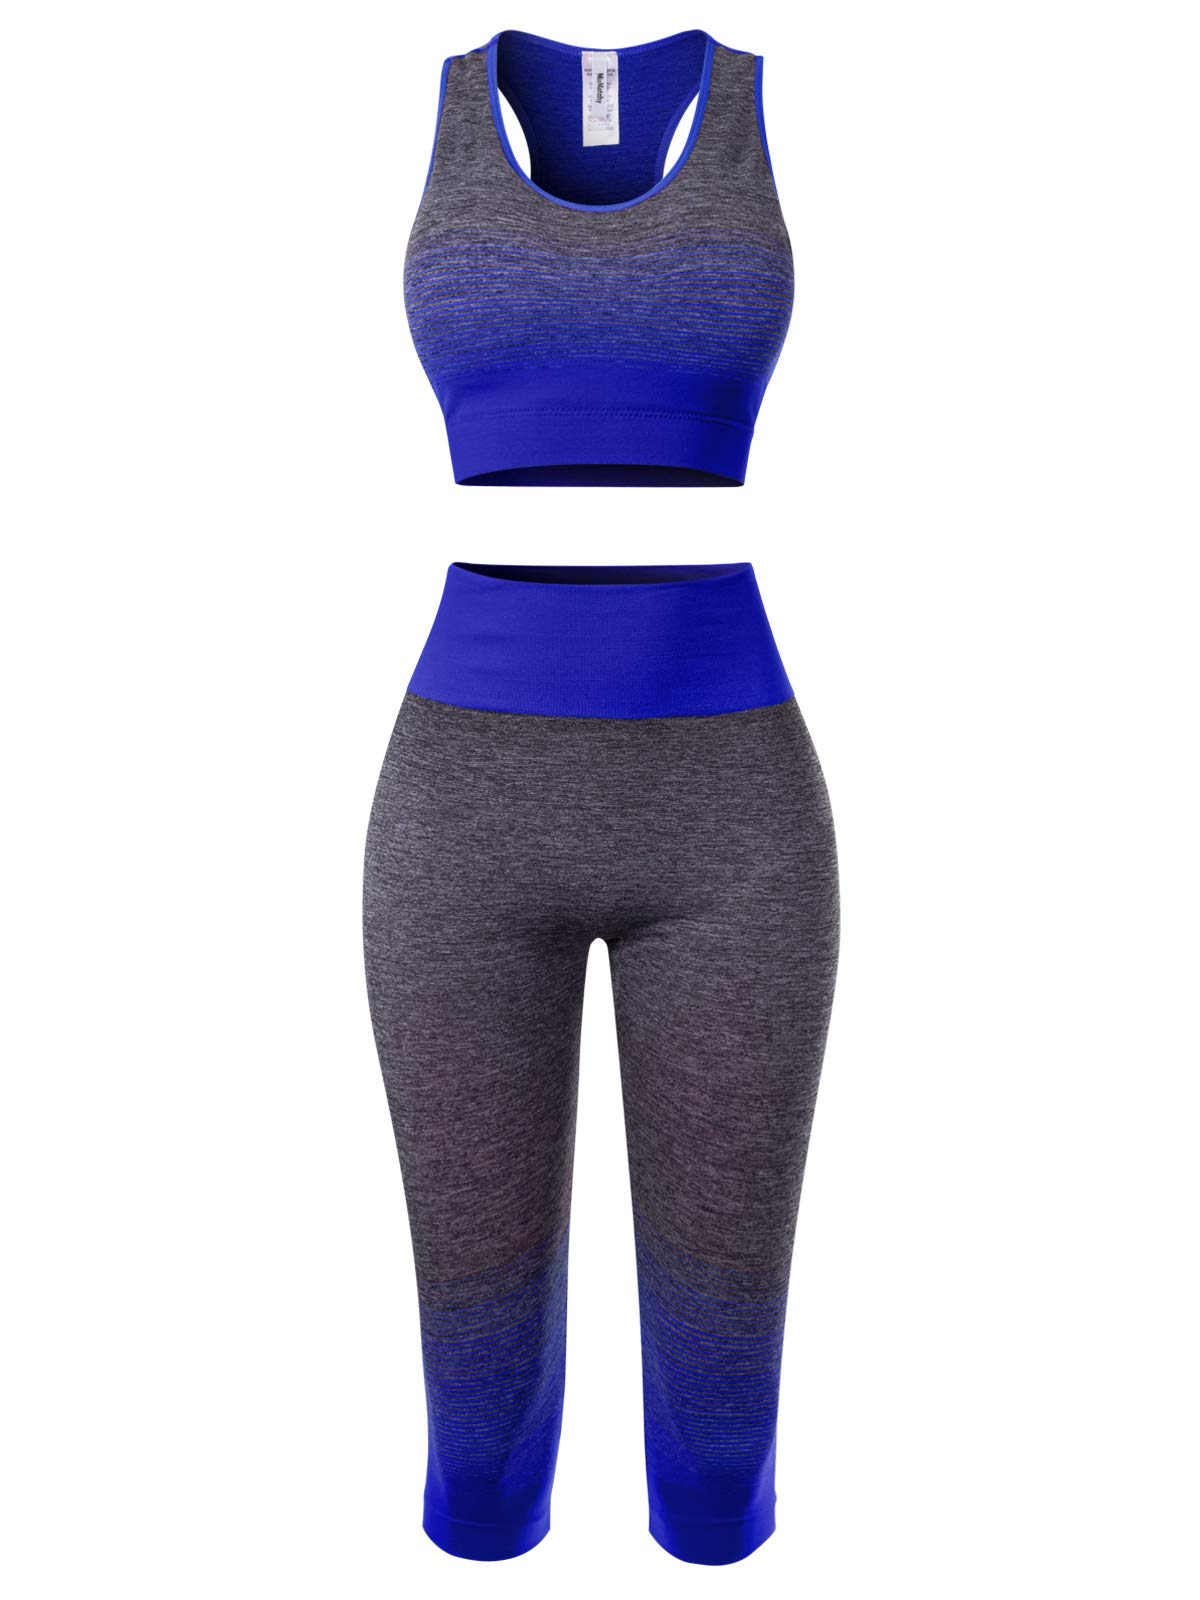 MixMatchy Women's Two-Piece Sports Bra + Capri Leggings Gym Yoga Wear Set Royal ONE by MixMatchy